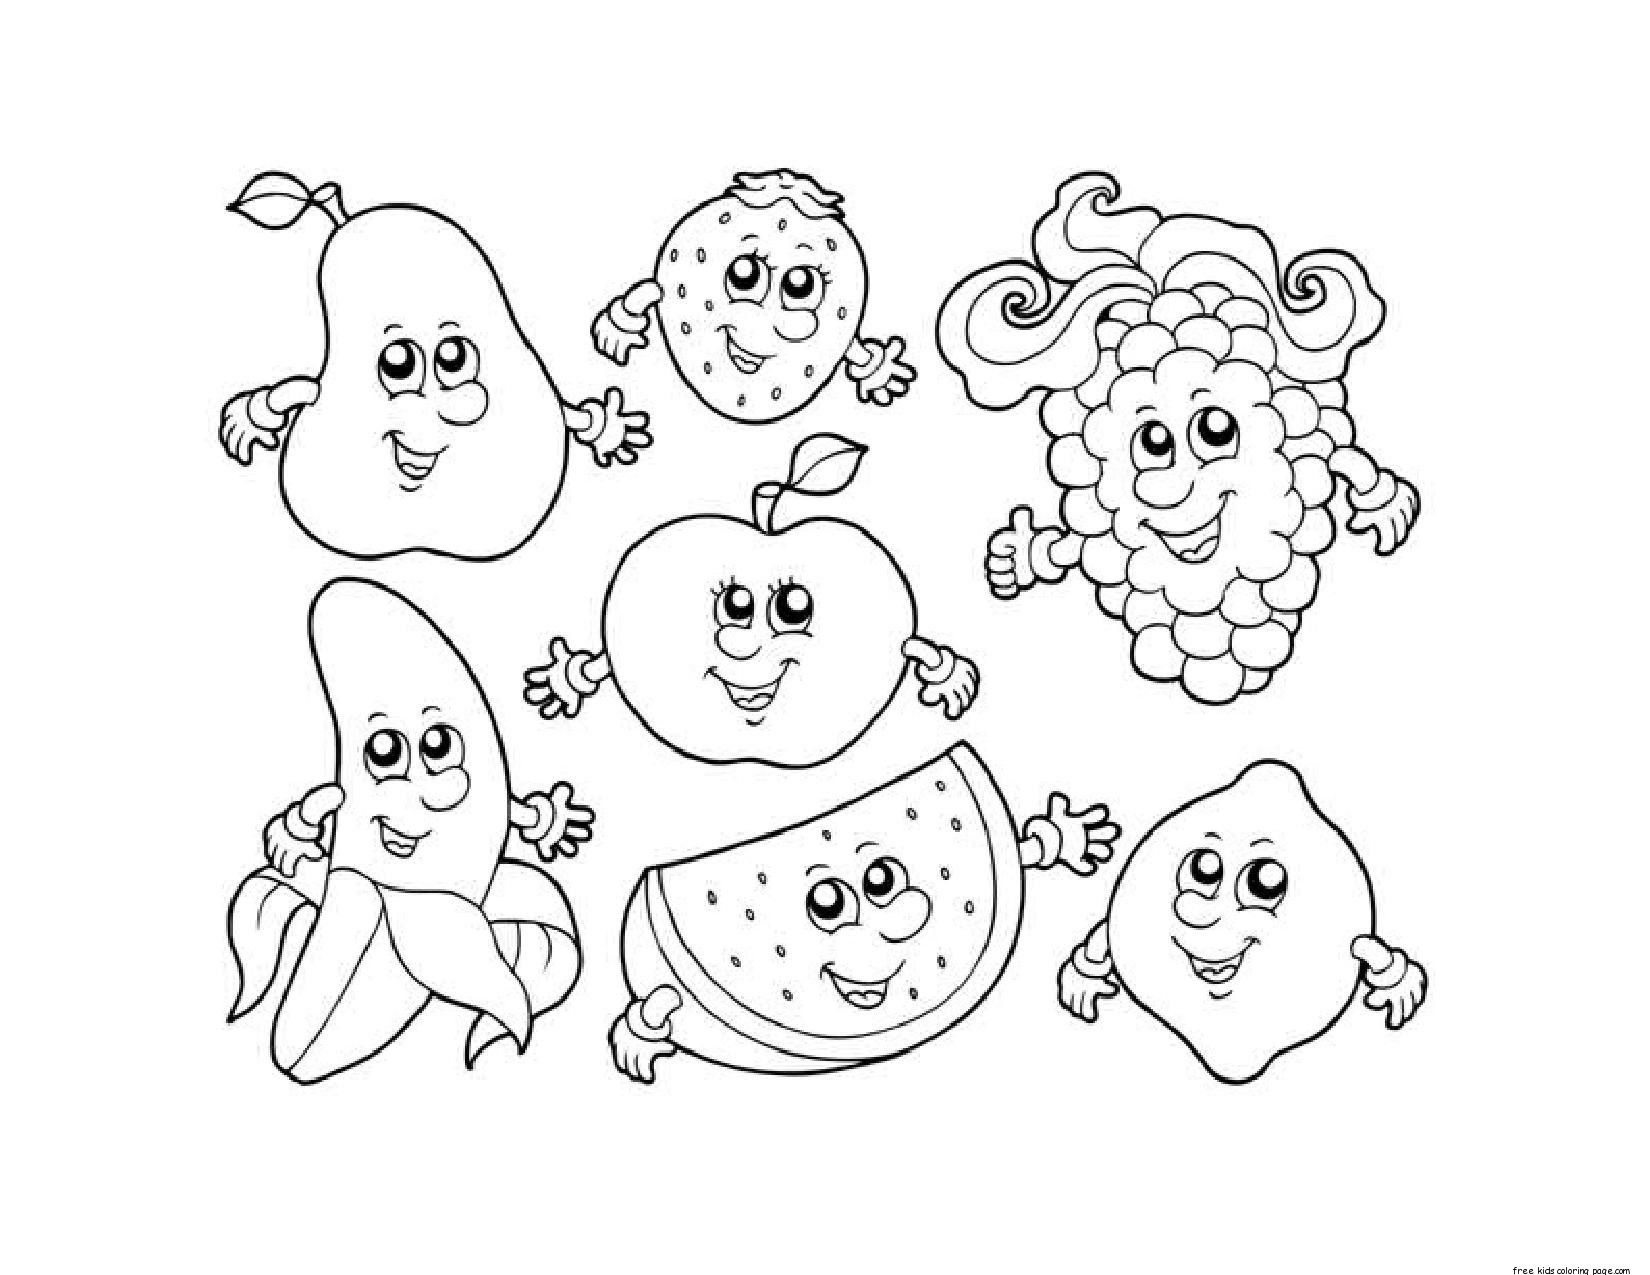 Free printable coloring pages fruits and vegetables - 10 Pics Of Grapes Fruit Coloring Pages Grapes Clip Art Coloring Popular Free Printable